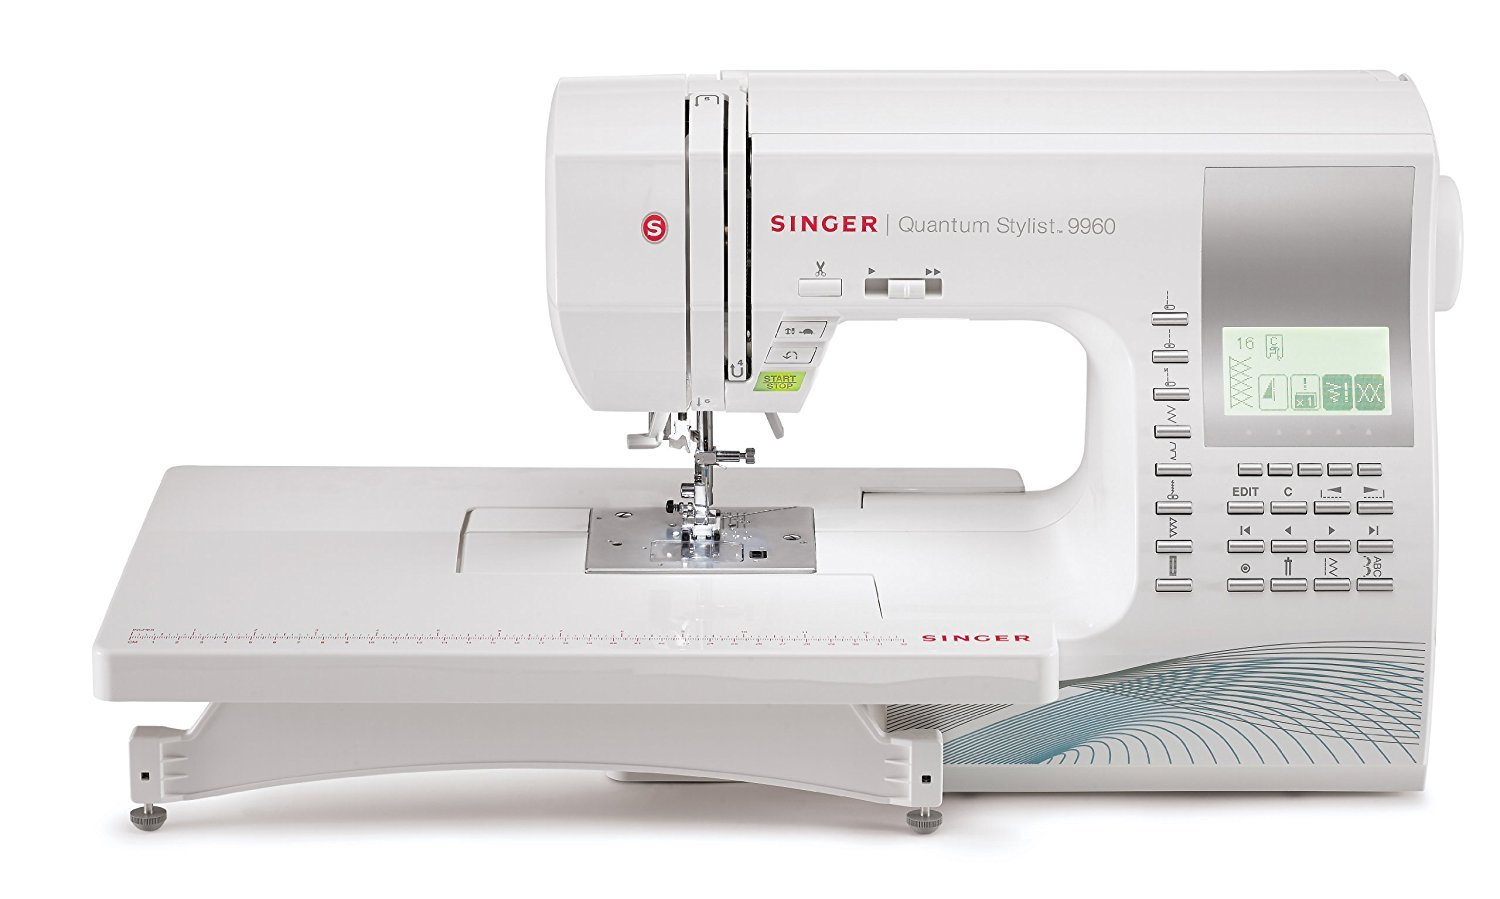 Top 6 Best Portable Sewing Machine (2020 Reviews & Buying Guide) 1